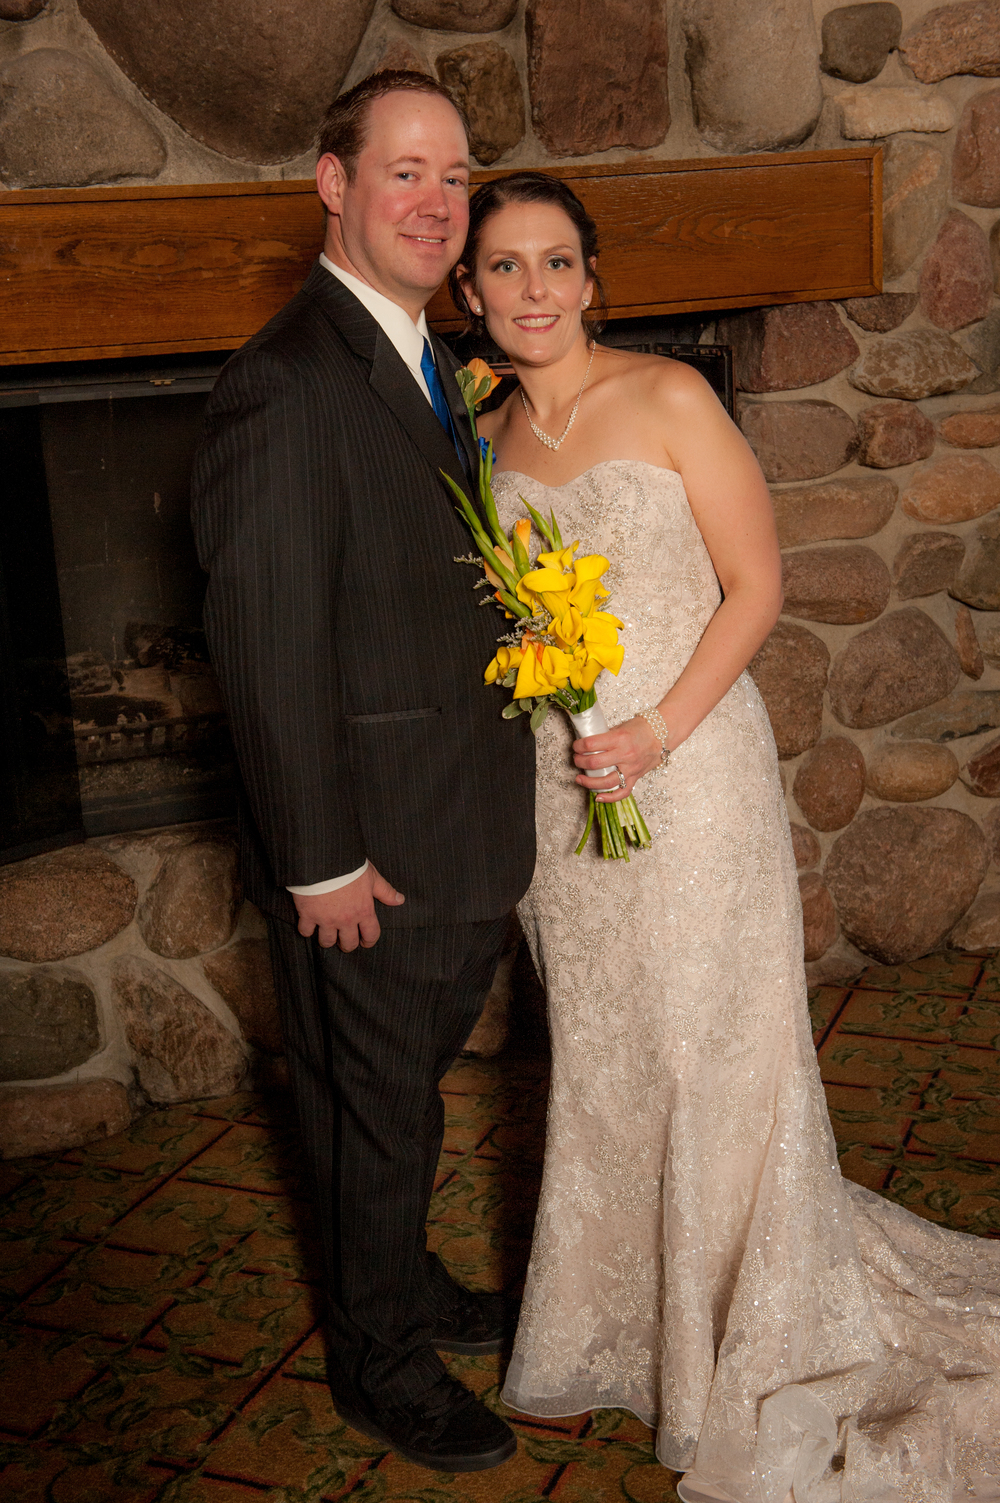 Johnson Wedding (171 of 260).jpg